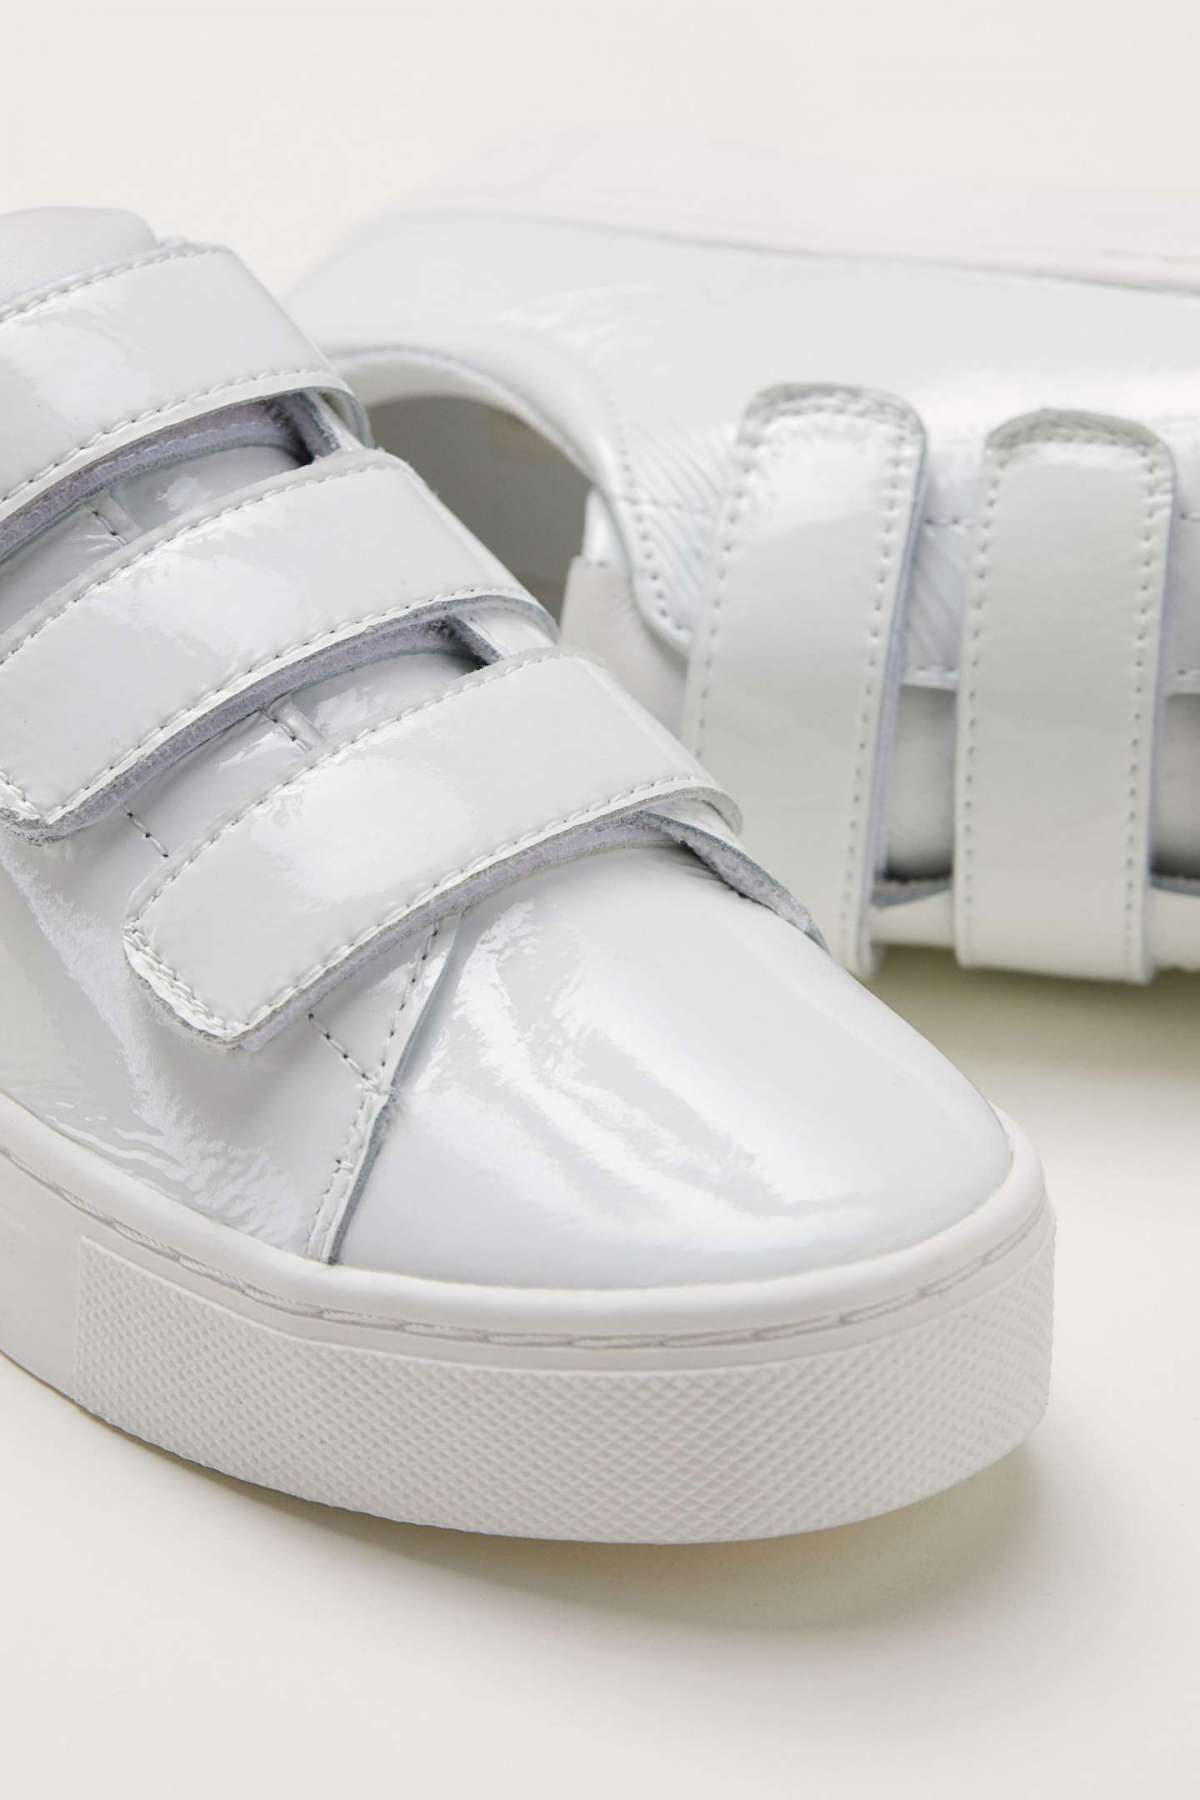 Sneakers in pelle laccata H&M a 59,99 euro